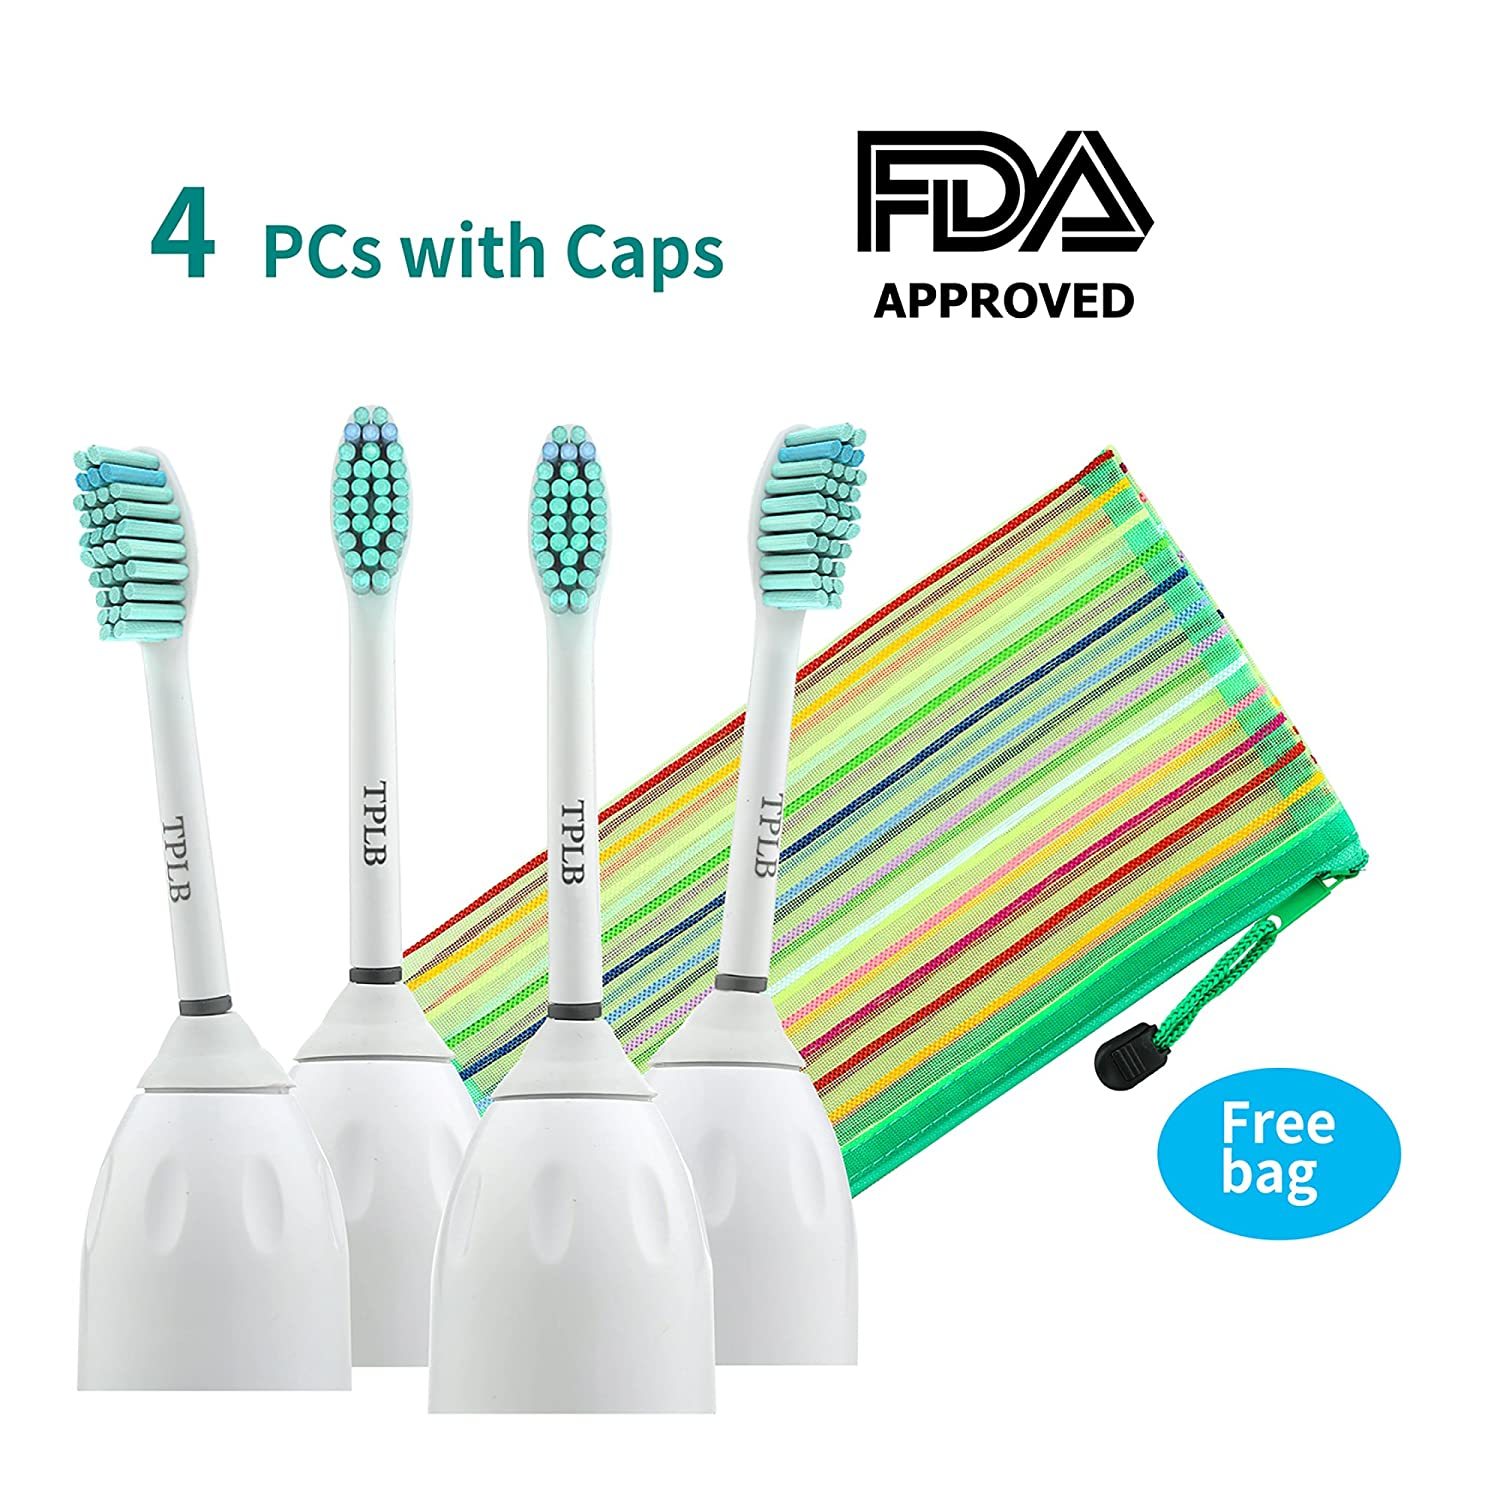 2017 TPLB 4 Electric Toothbrush Replacement Heads For Philips Sonicare E-Series | BPA Free Bristles, Reduced Noise & Perfect Fit | For Advanced, CleanCare, Elite, Essence & Xtreme |Free Toiletry Bag